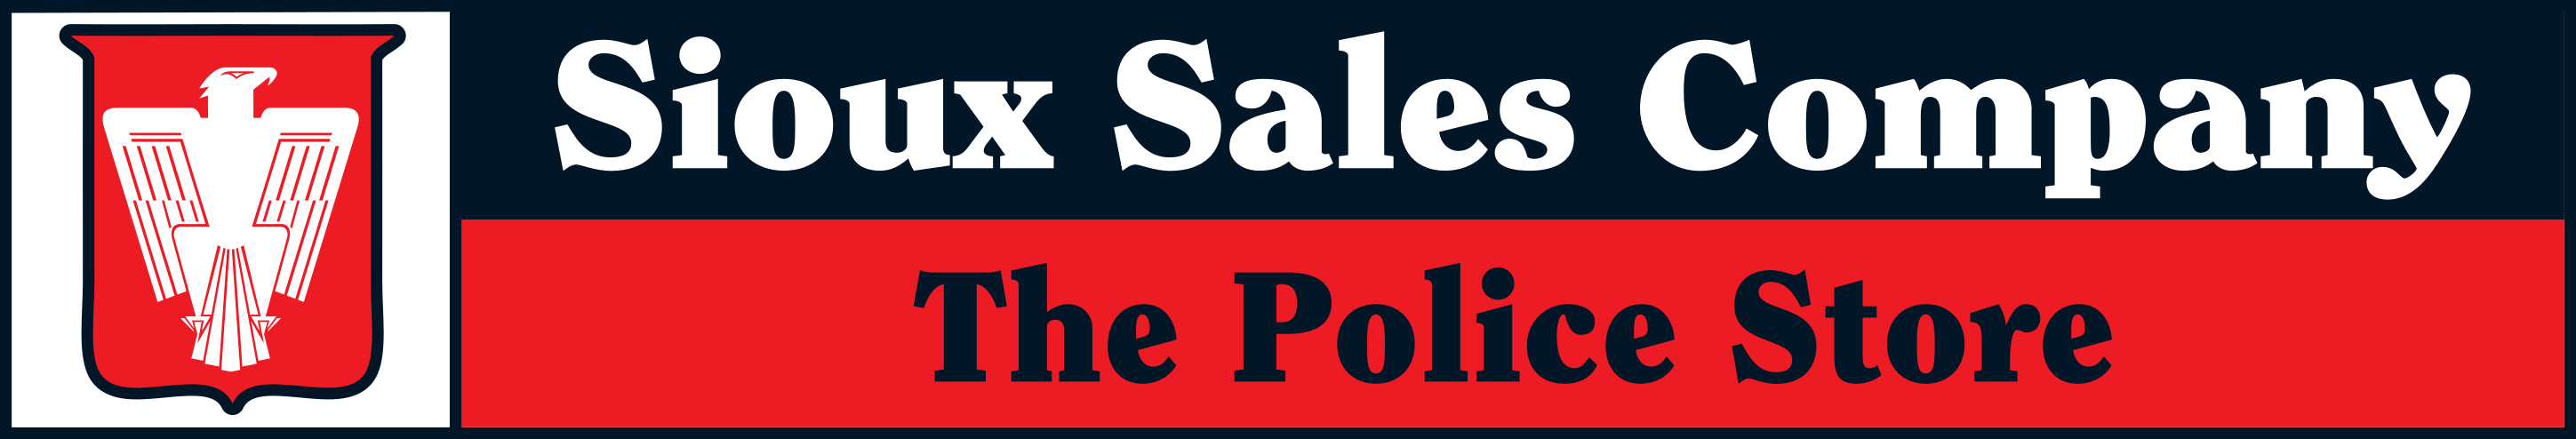 Sioux Sales Company